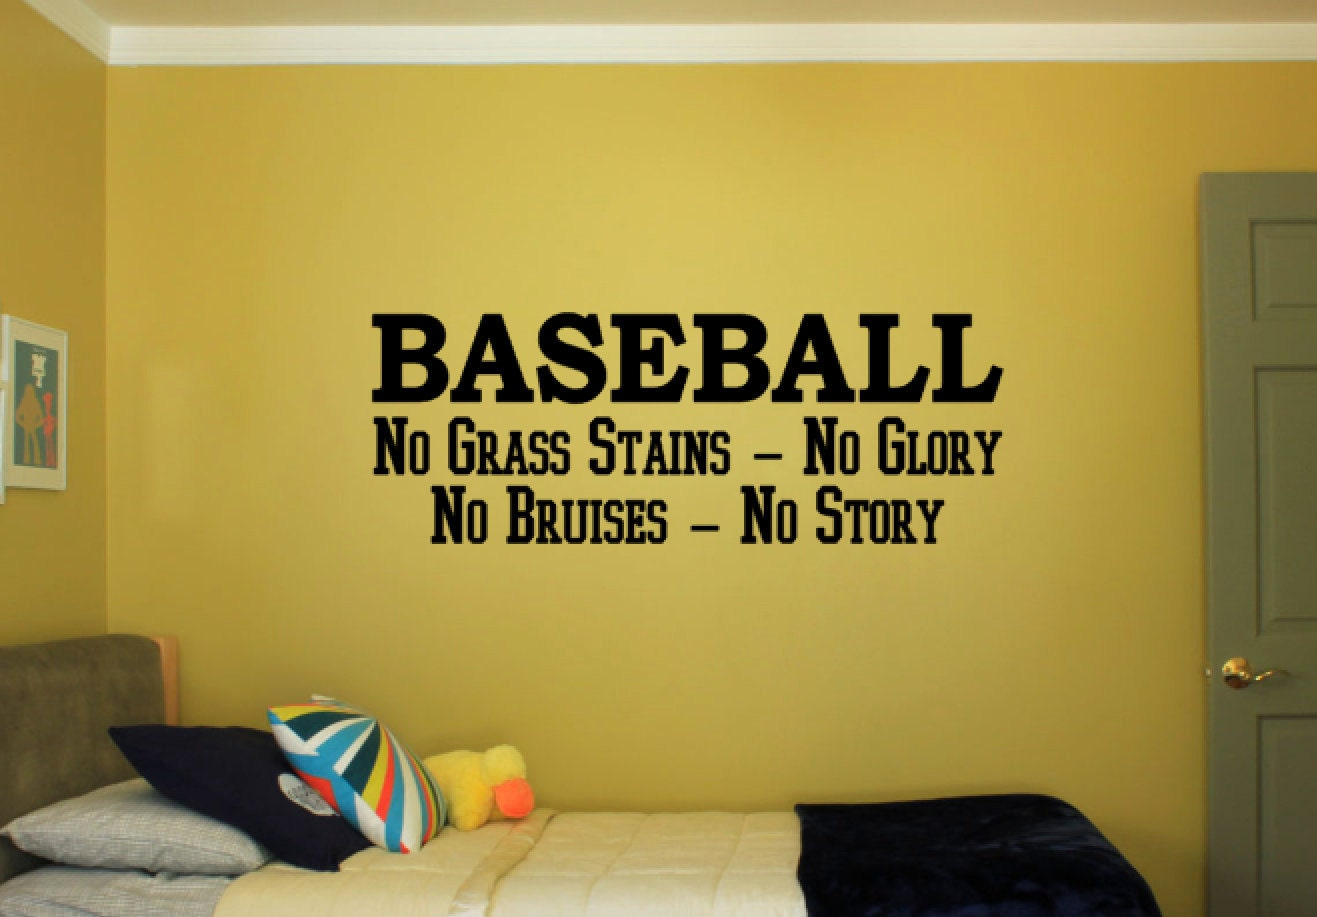 Baseball No Grass Stains Glory Bruises Story